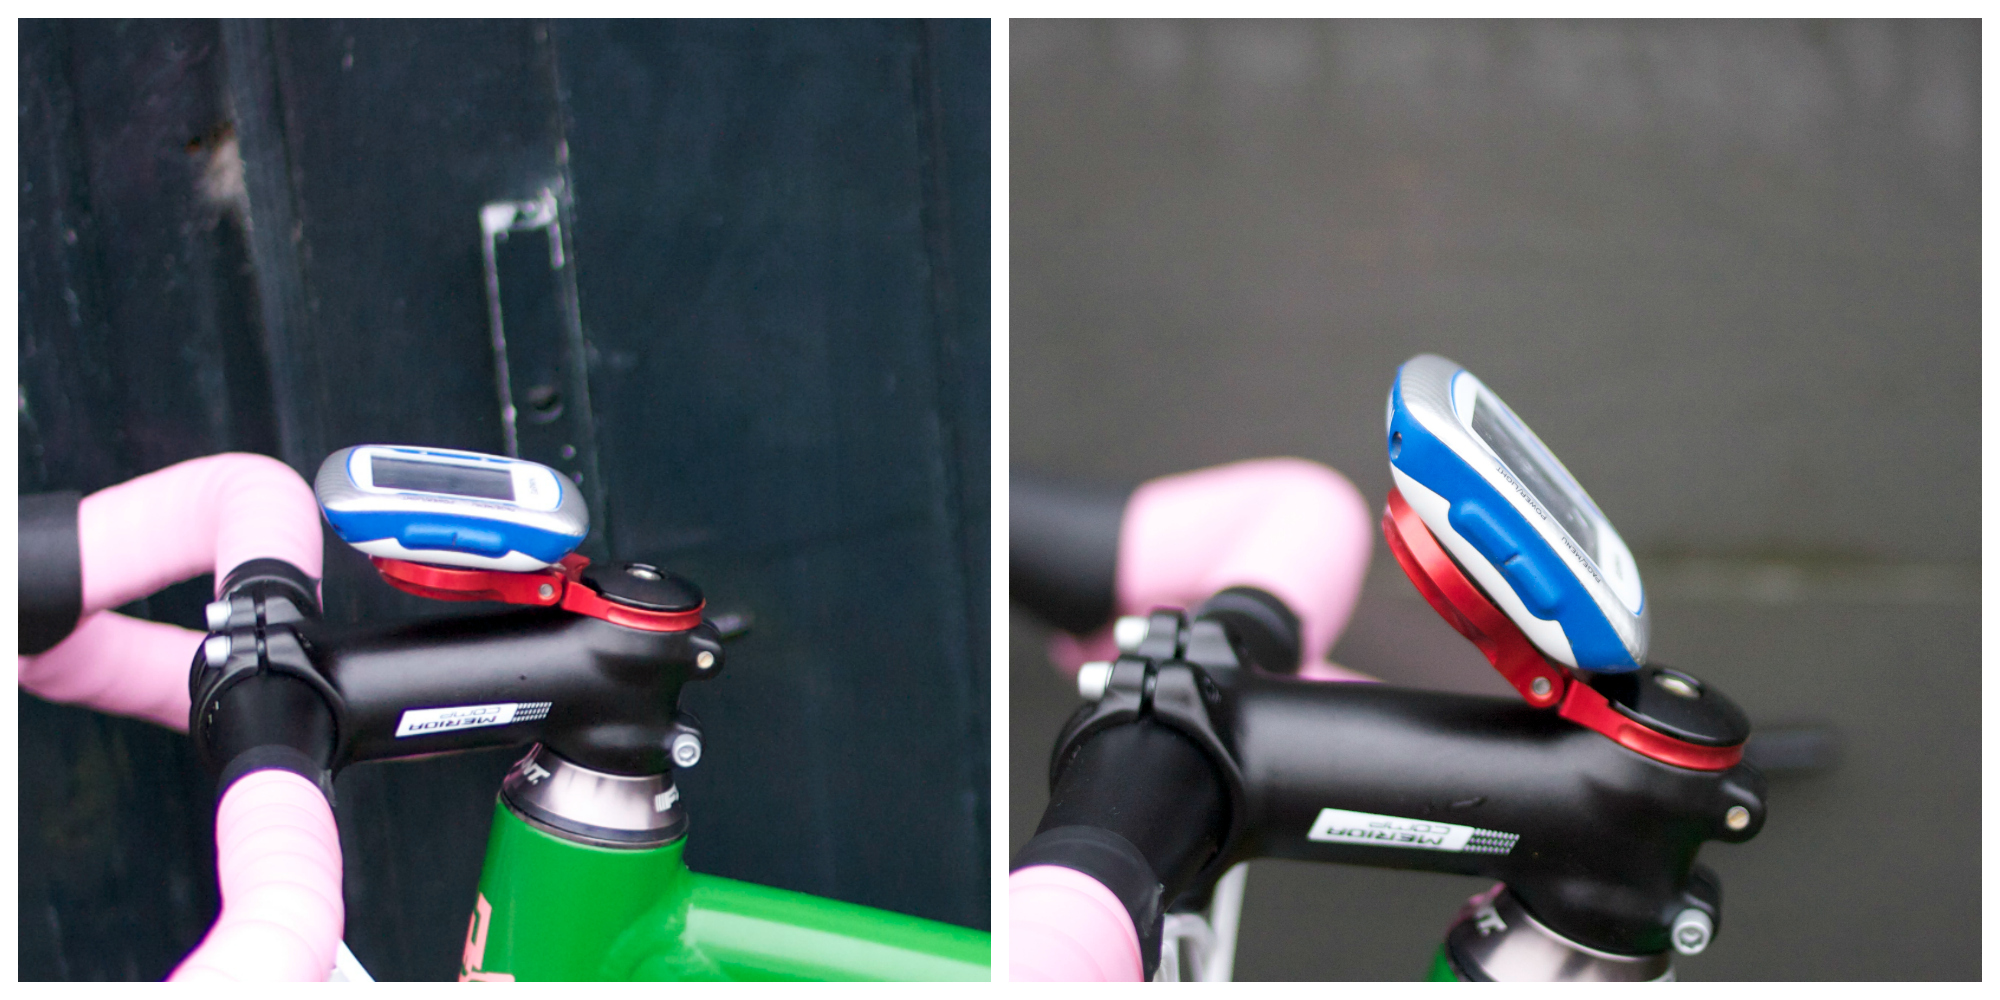 Wielrenblad_Buit_van_de_week_K-Edge_stem_mount_Garmin_collage